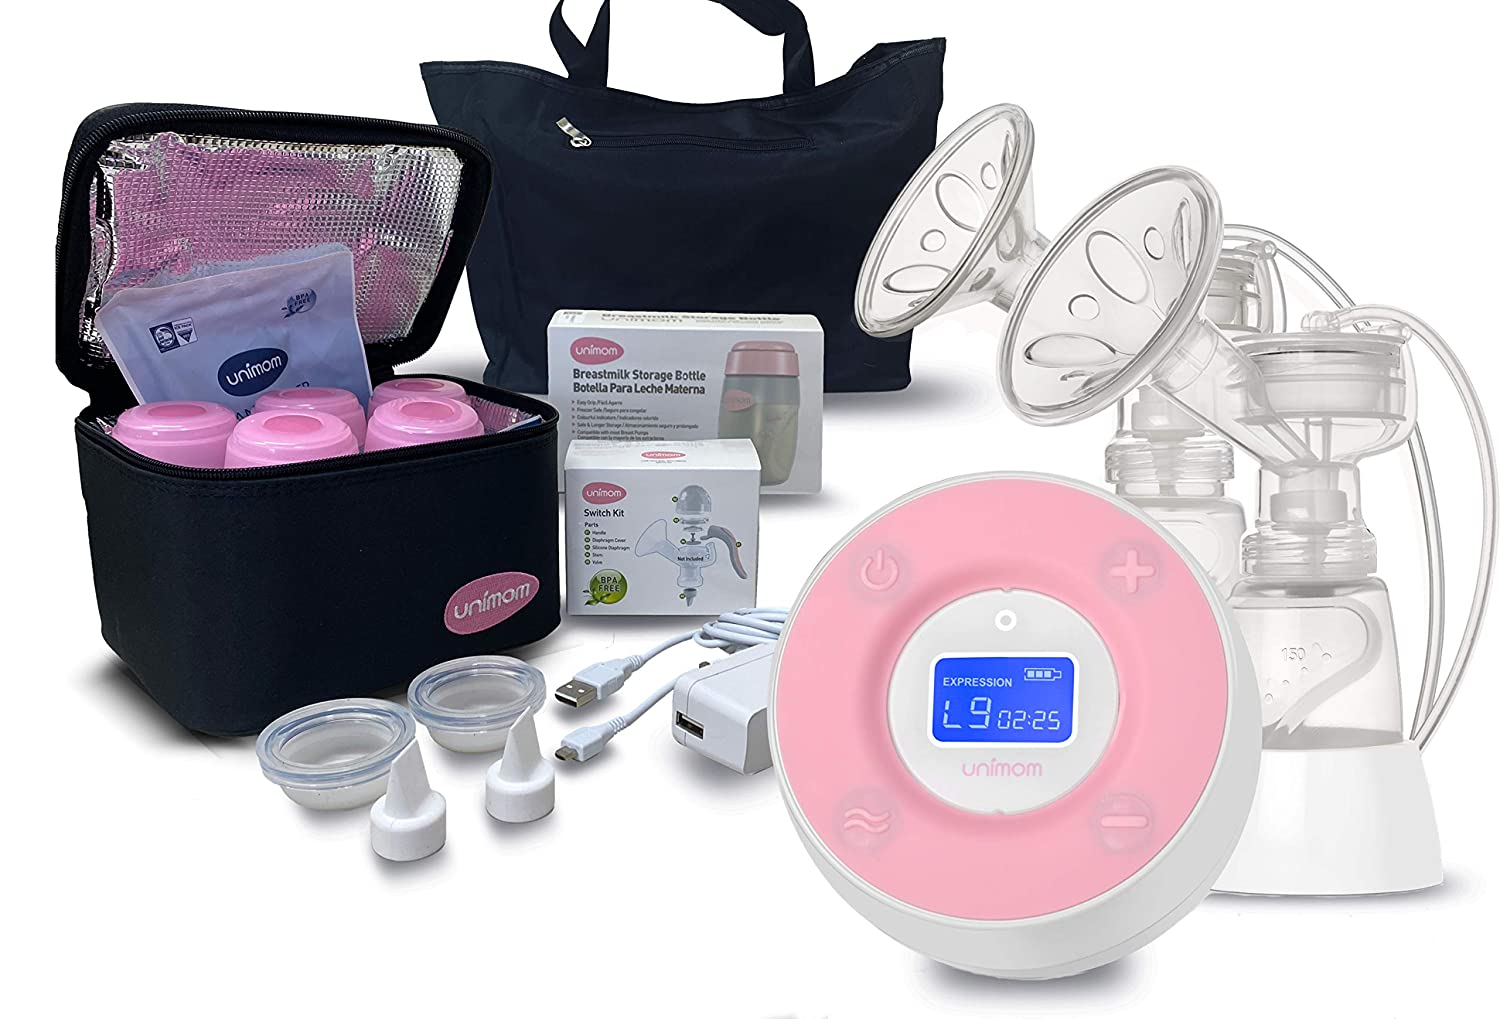 Unimom Double Electric Breast Pump – Minuet Bundle Pack with Cooler and Bottles and swicth kit - Touch LCD Display – by Unimom